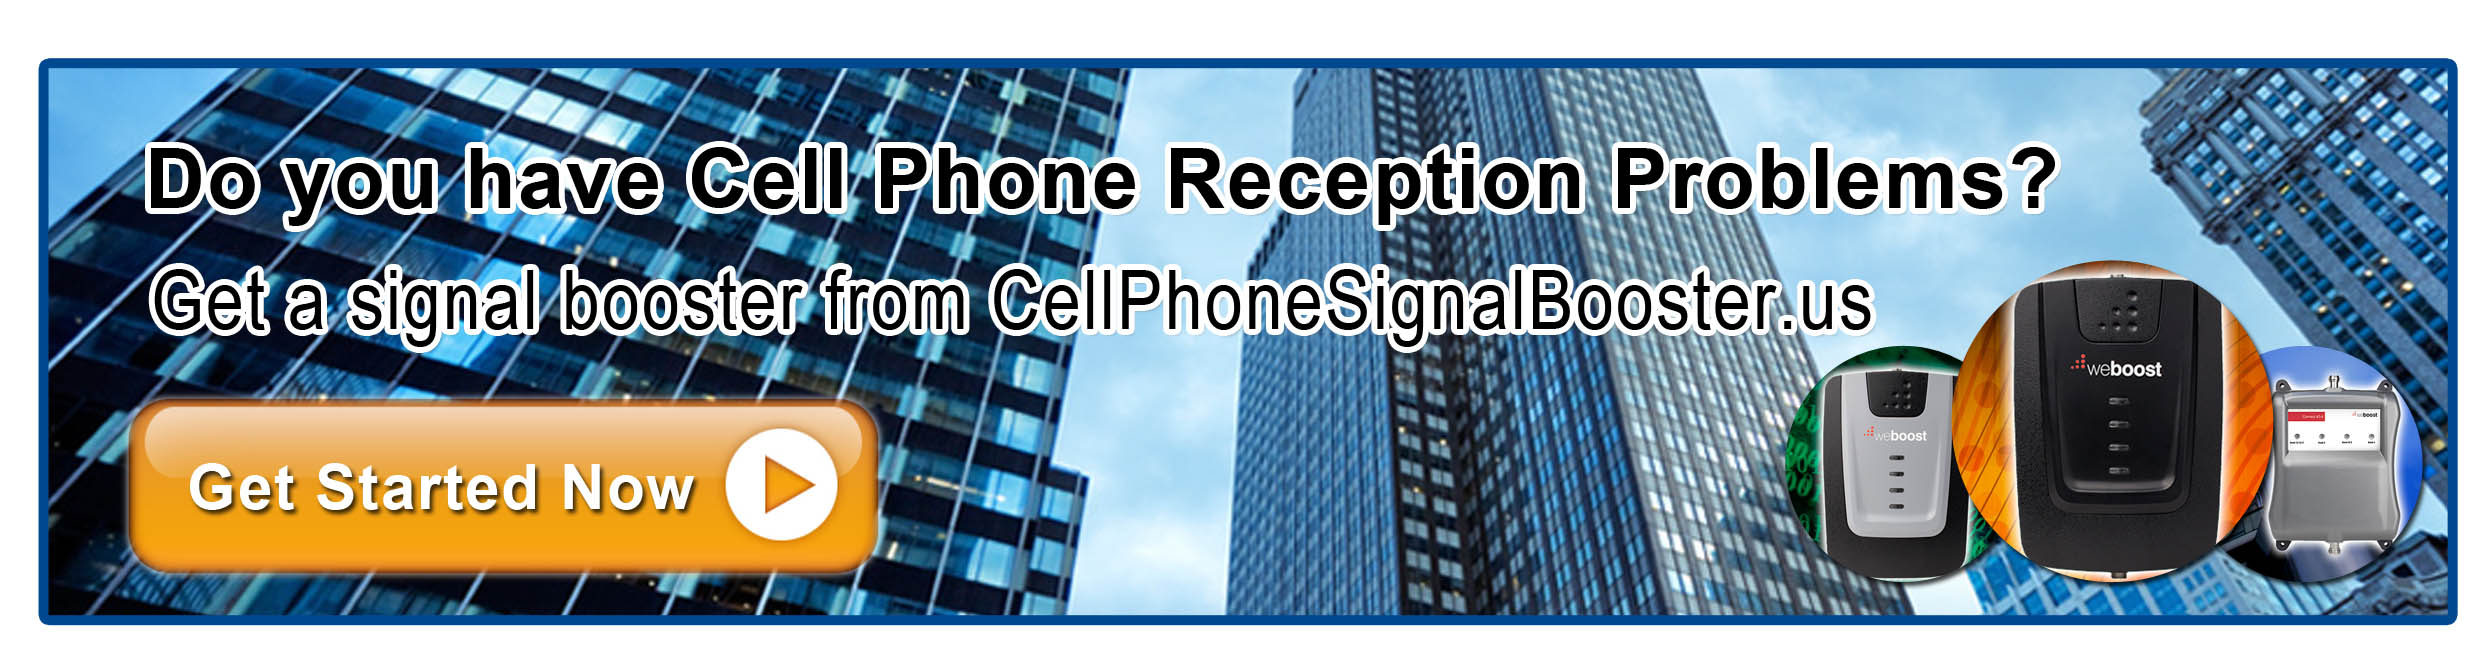 Upgrade to a better cell phone signal booster today!